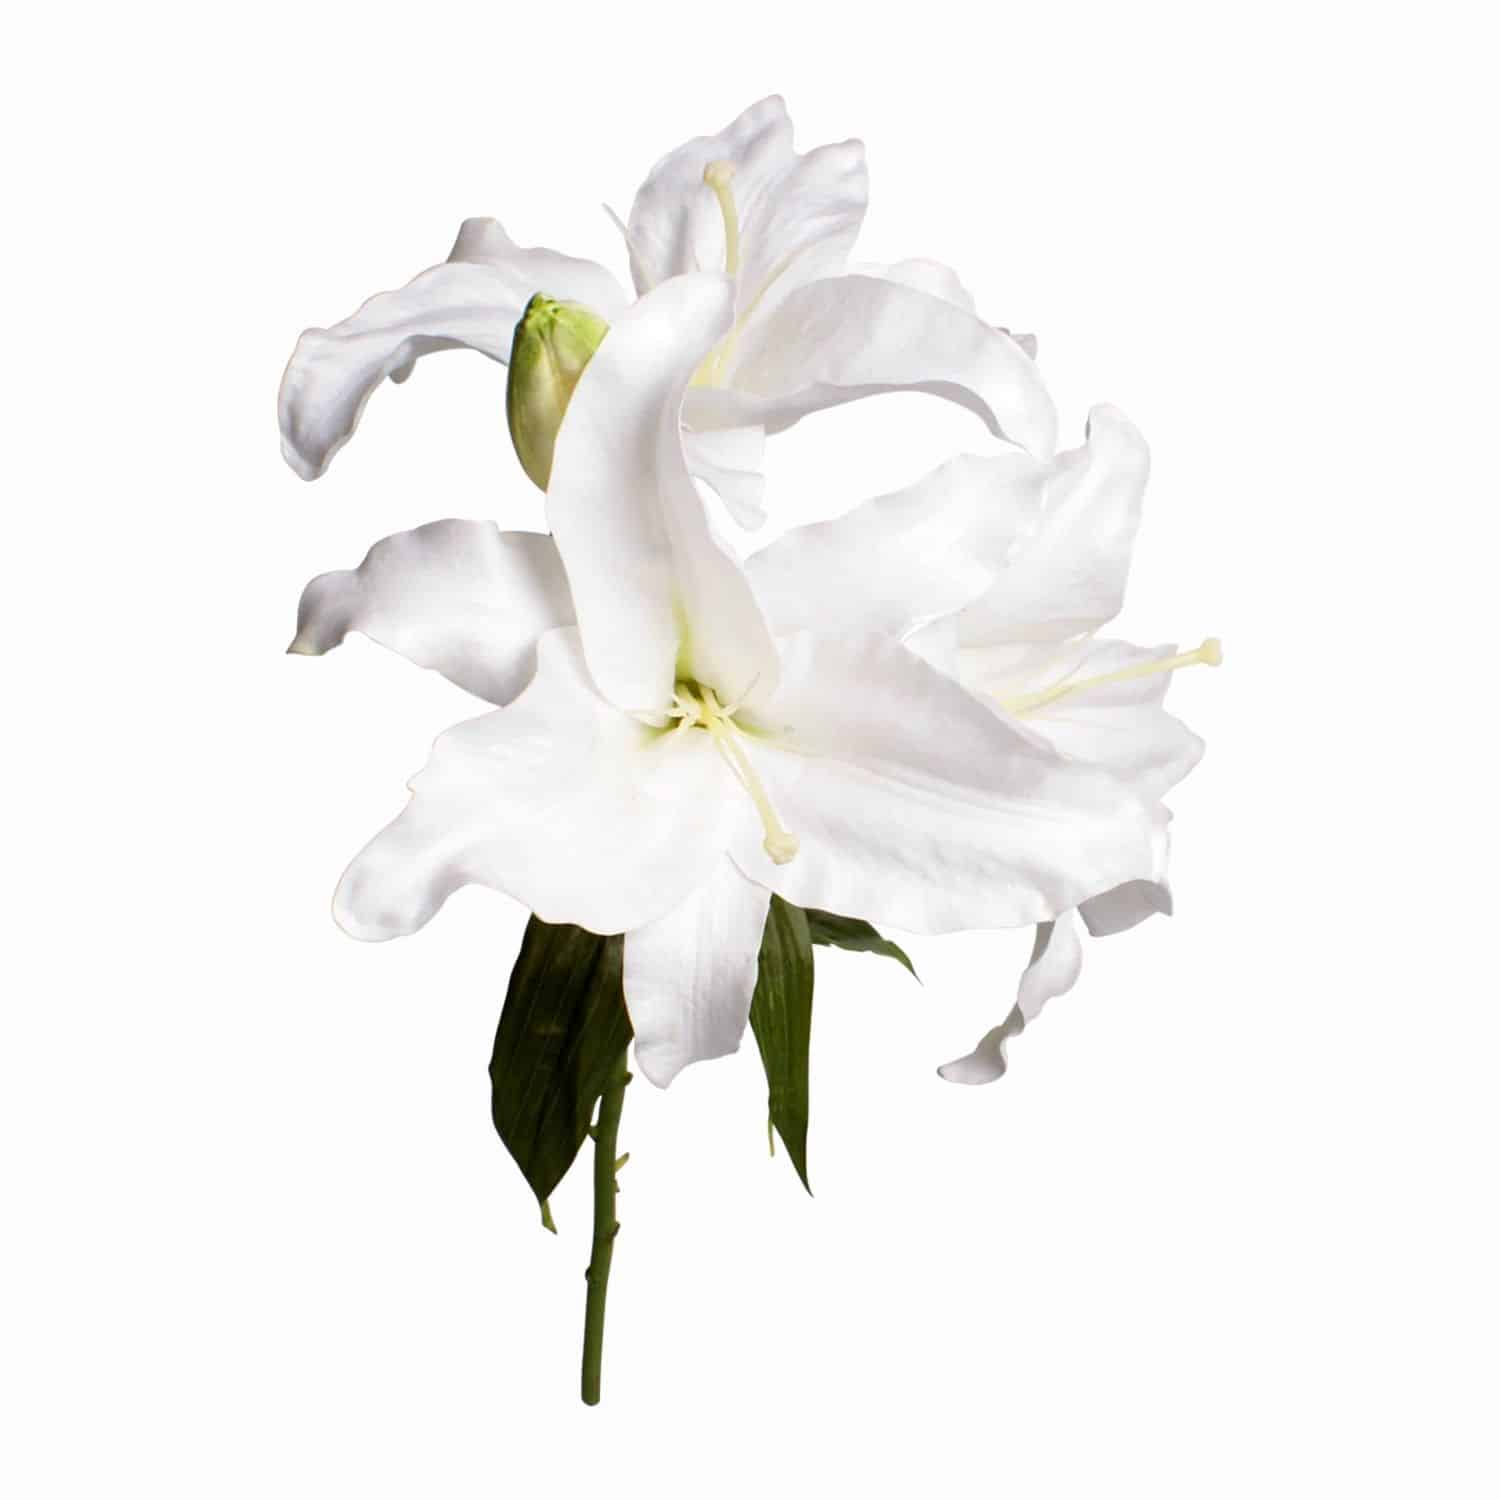 Our Casablanca lilies have three beautiful fully bloomed heads with a natural bud. The natural pure white colour and real touch texture is one of the best we found.